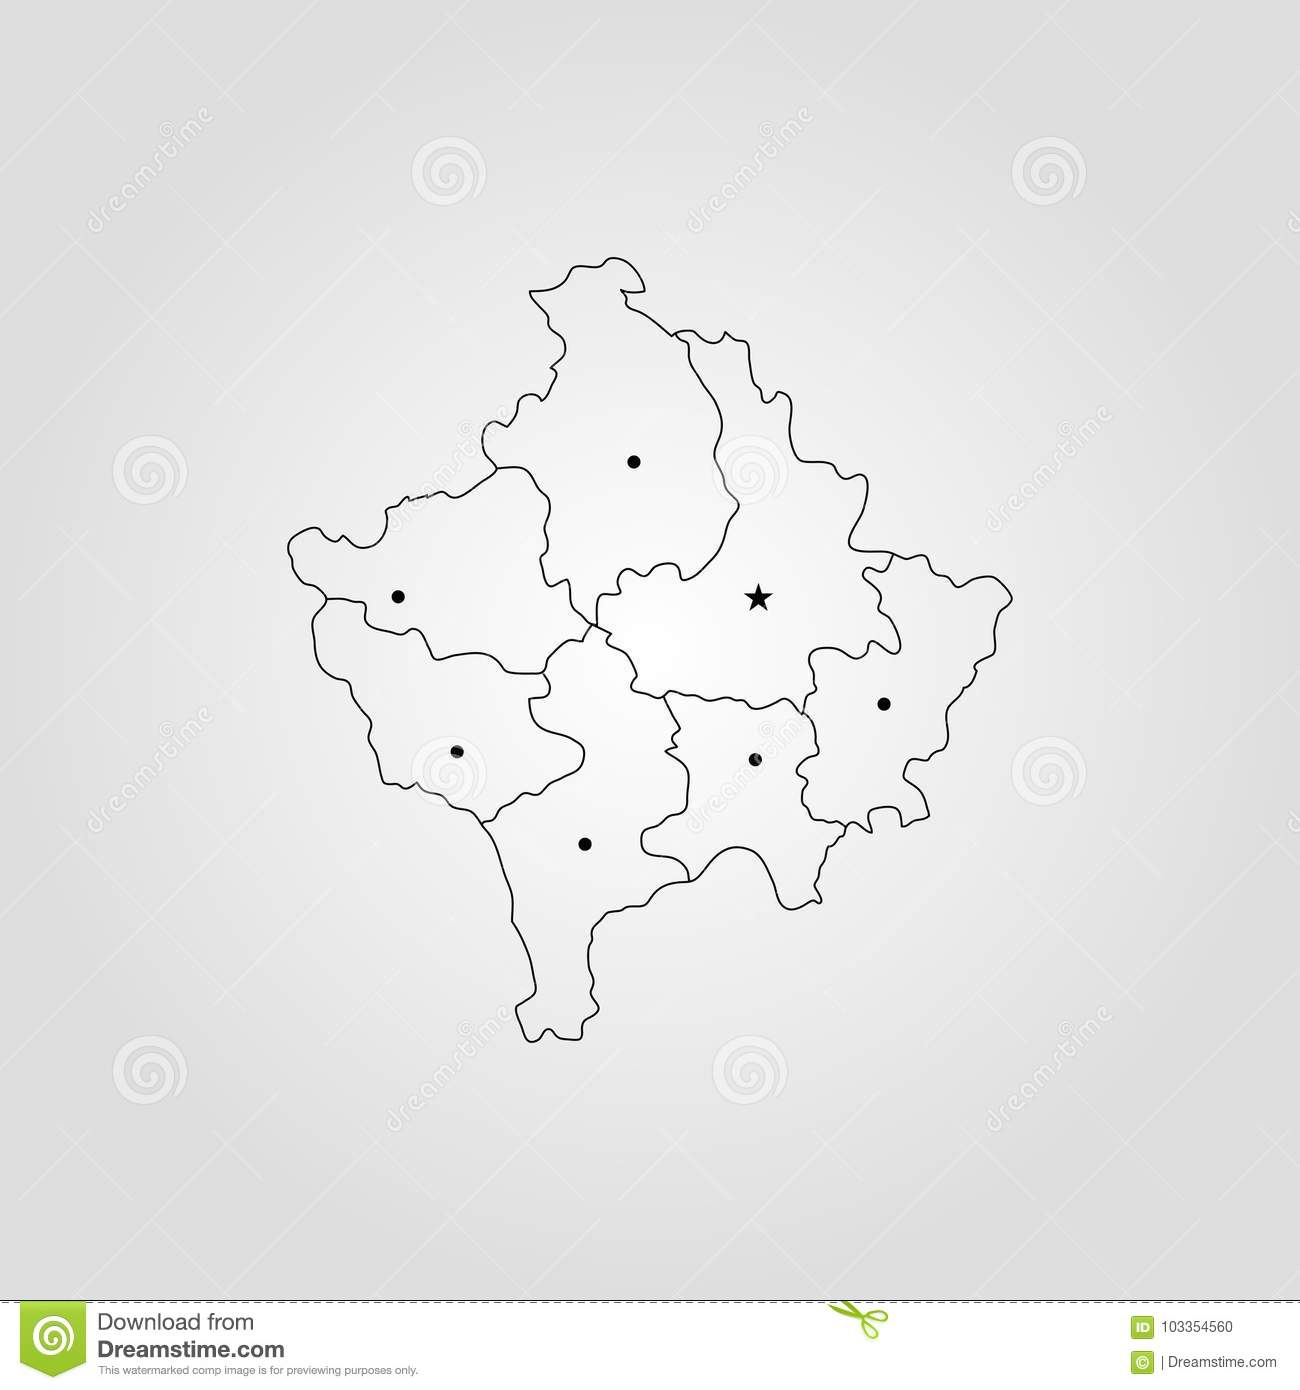 Map of kosovo stock illustration illustration of concept 103354560 download comp gumiabroncs Gallery